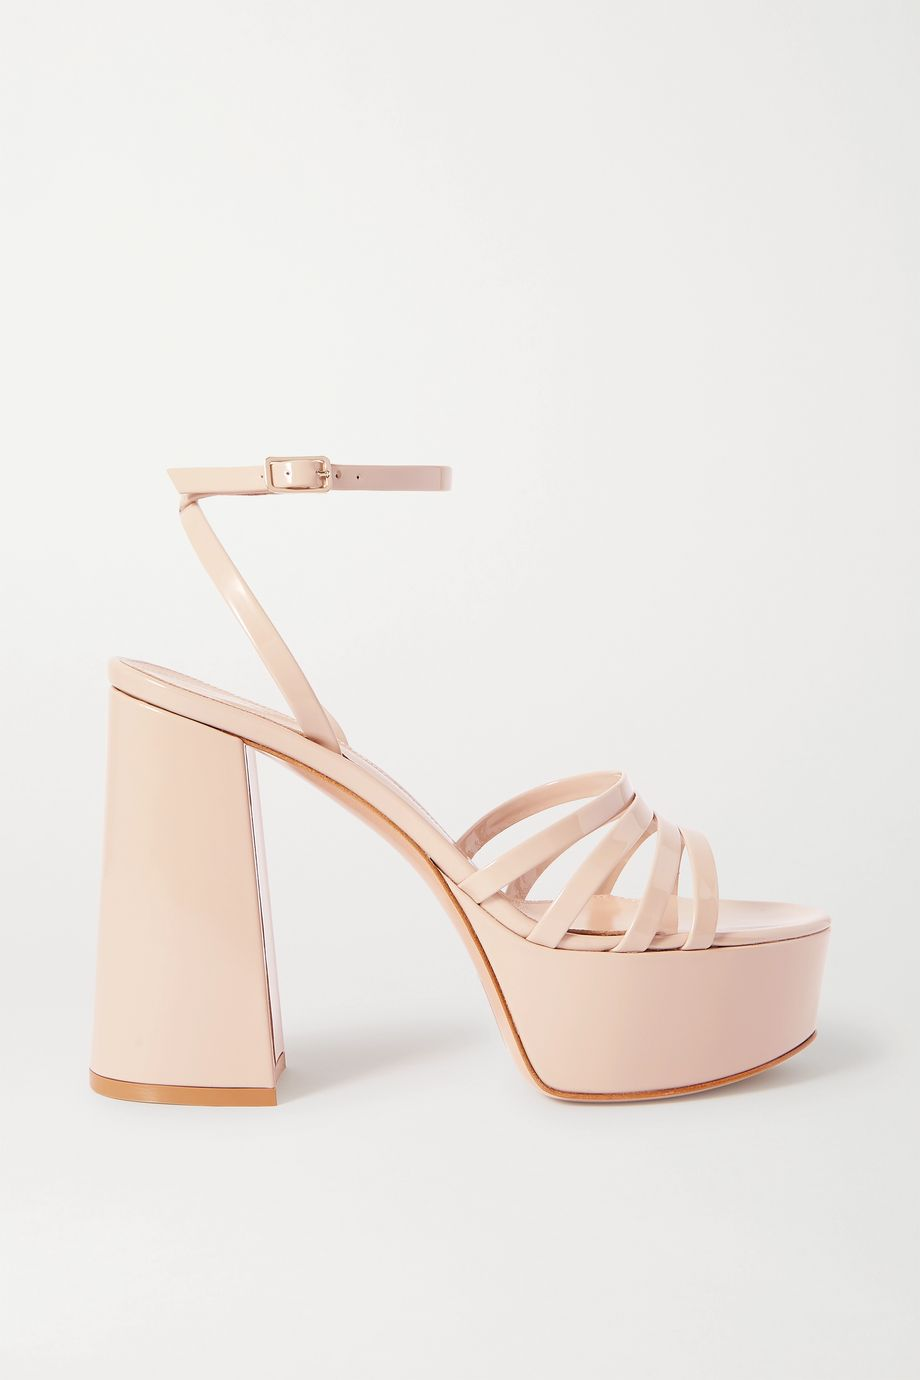 Gianvito Rossi Angelica 70 patent-leather platform sandals